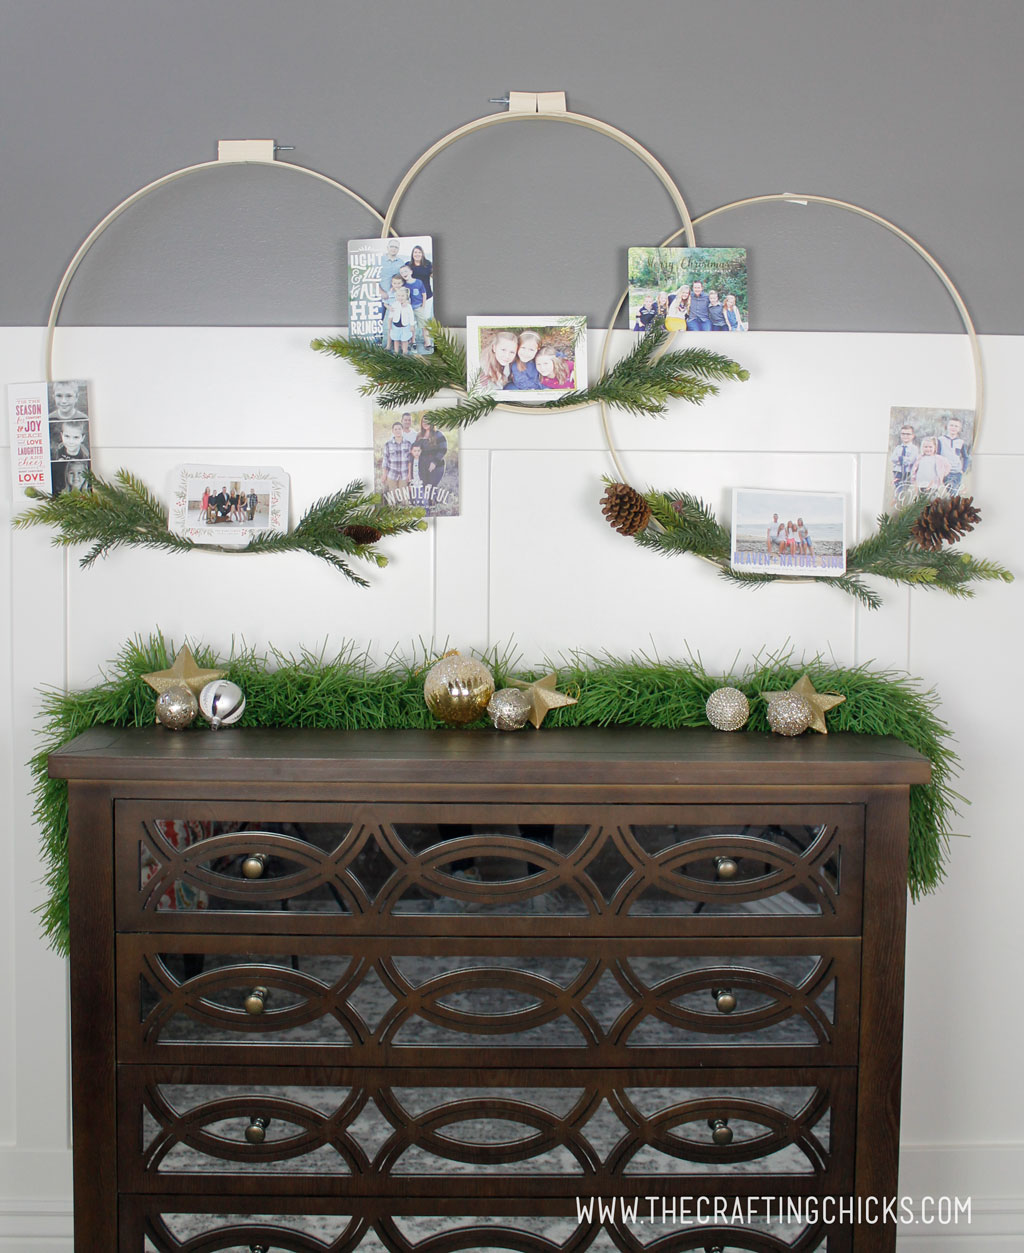 Winter hoop wreaths decorated with Christmas and holiday cards with pine sprigs.